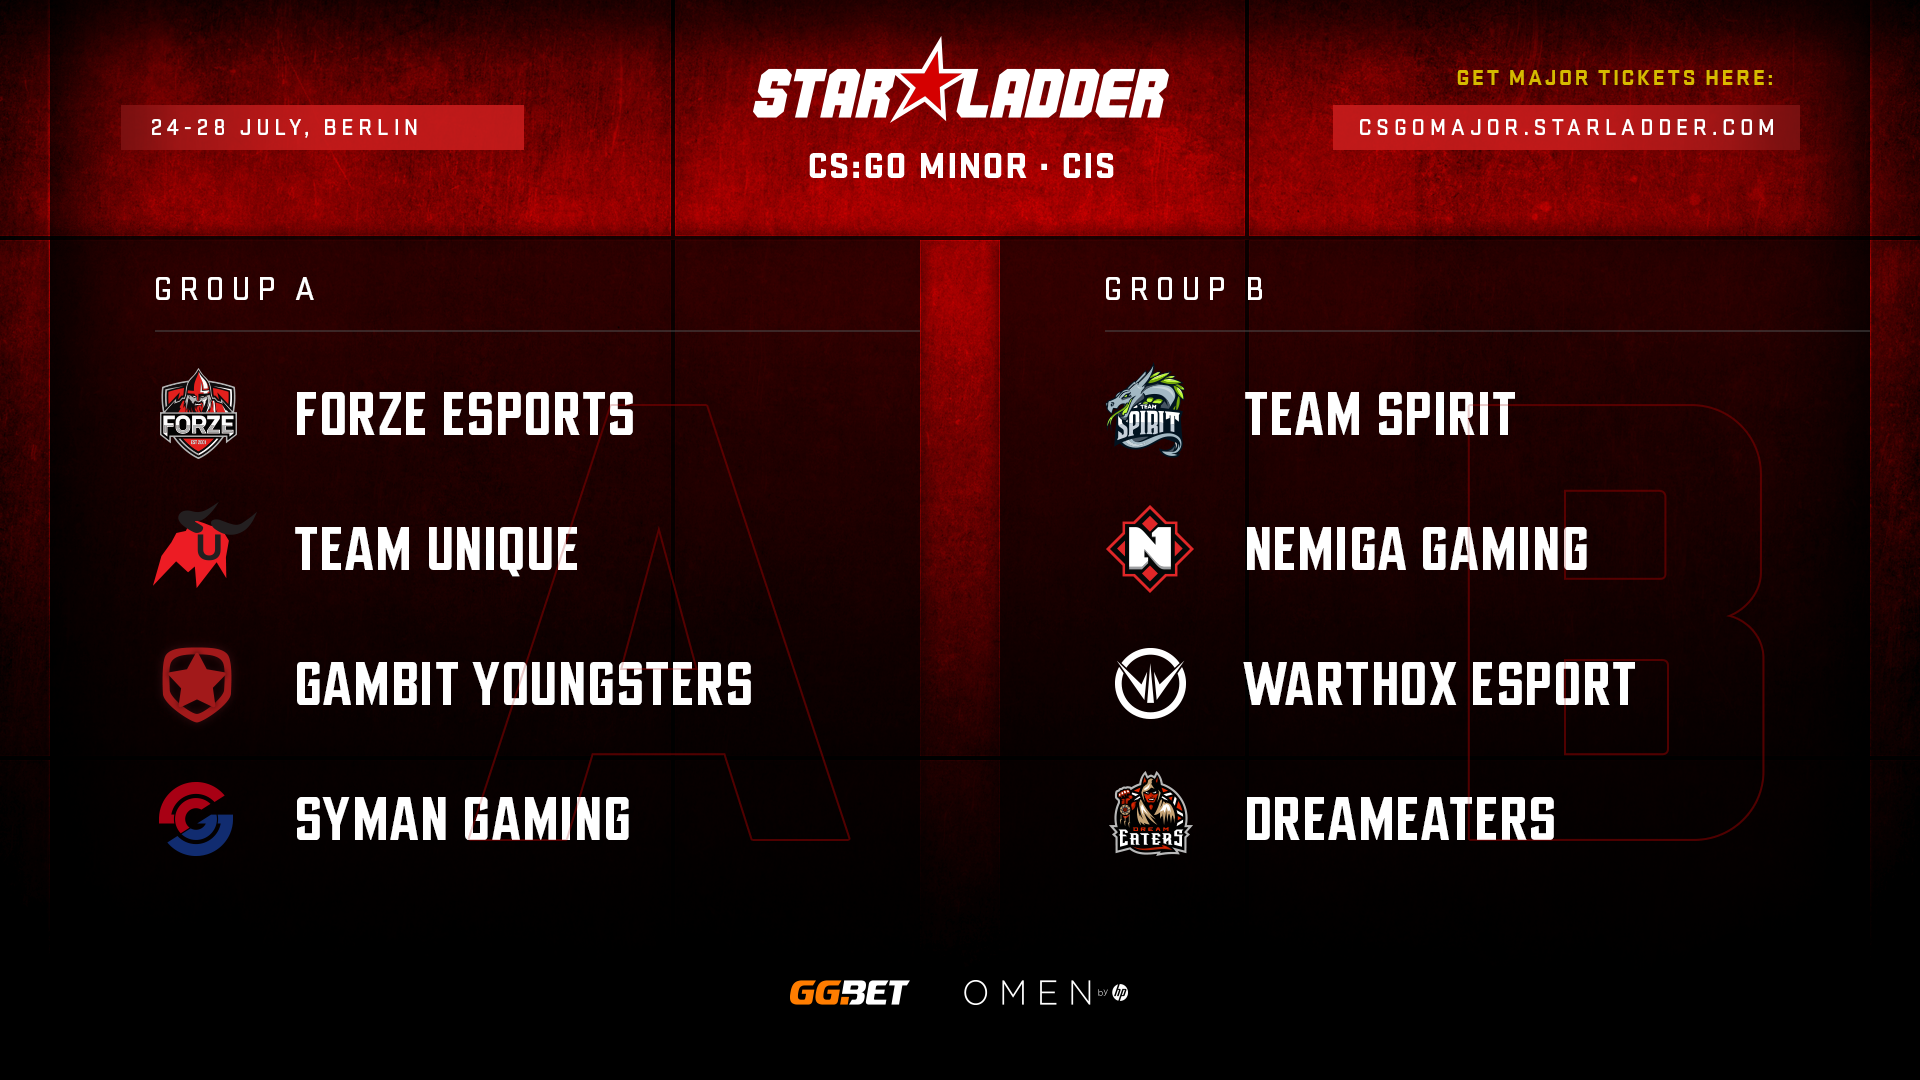 Посев команд на StarLadder Major Berlin 2019: CIS Minor